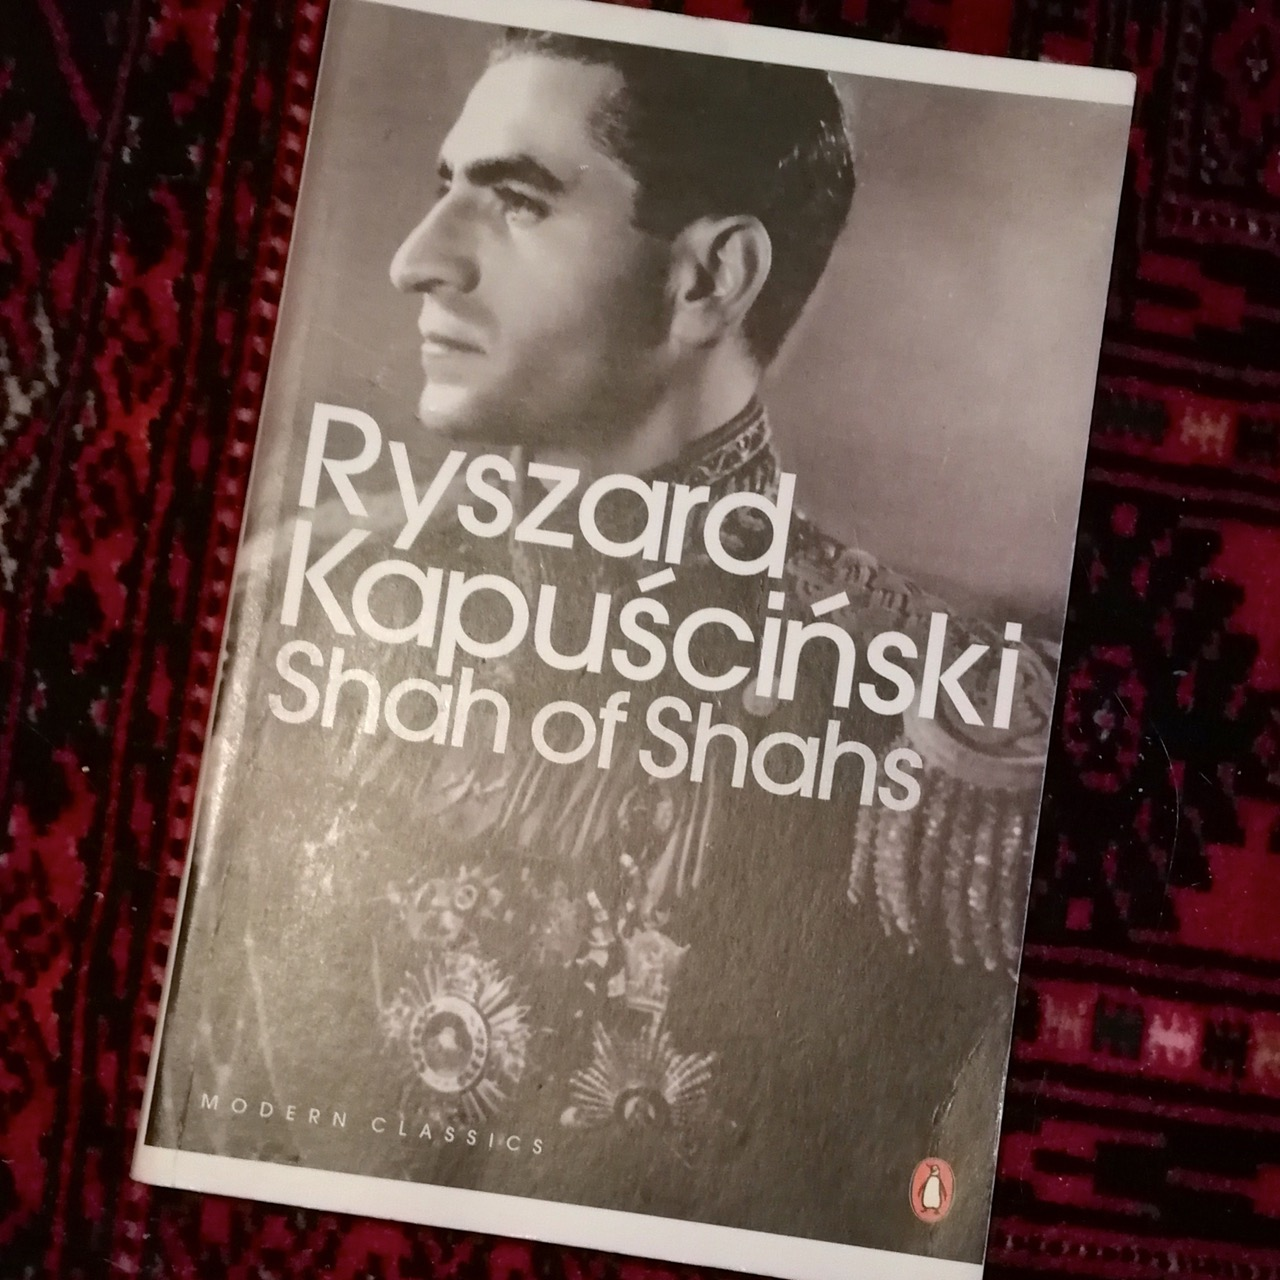 Reading-list-Shah-of-Shas-Kapuscinski.jpg